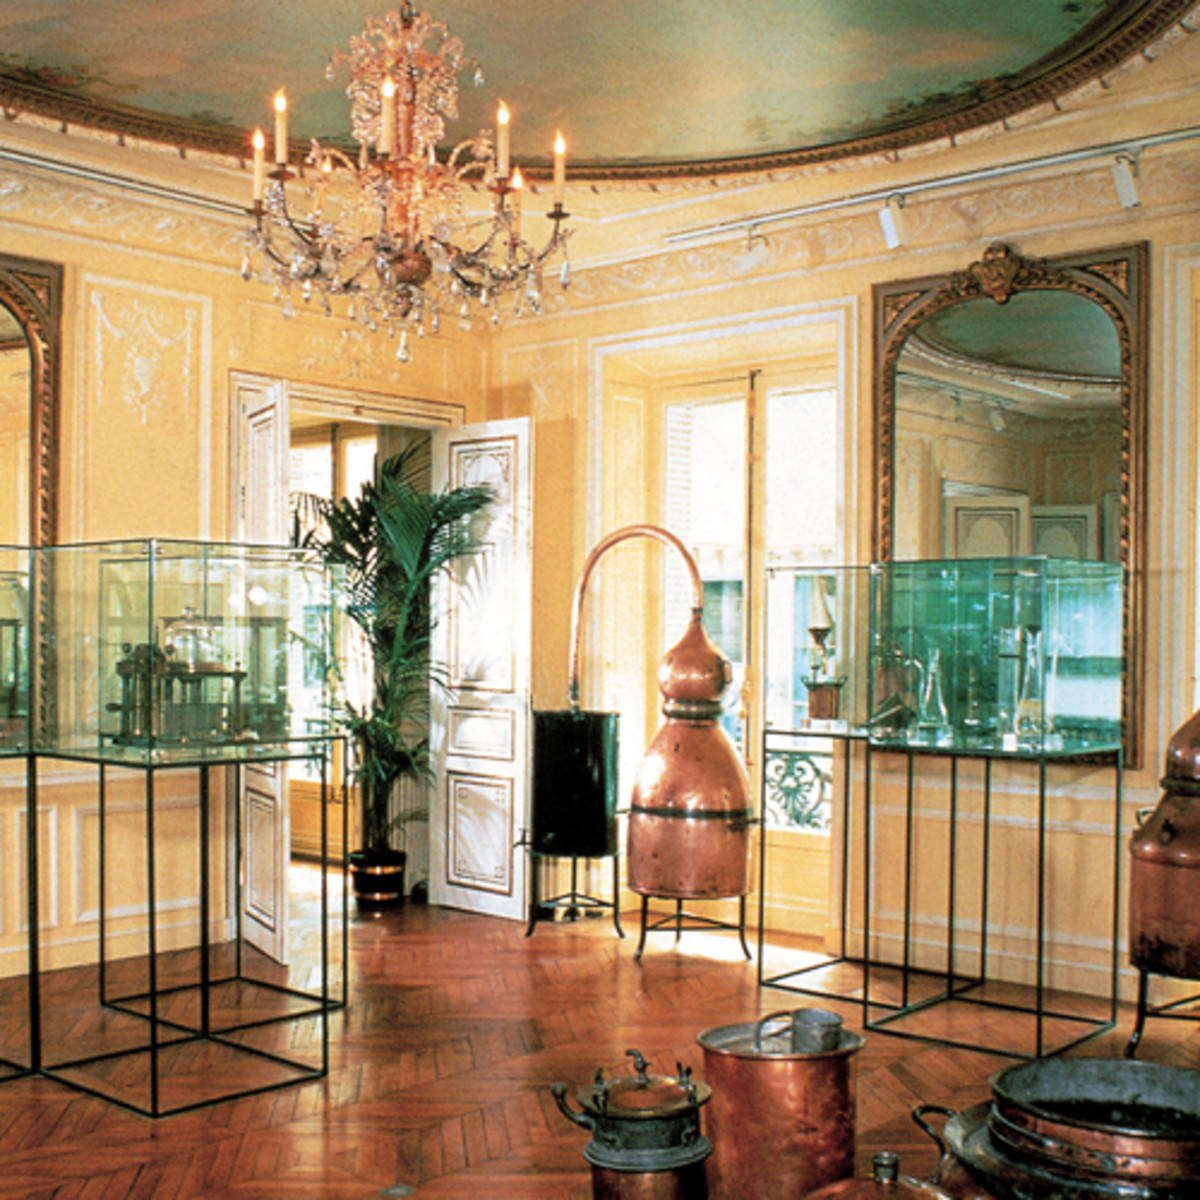 Find Unusual Paris Museums